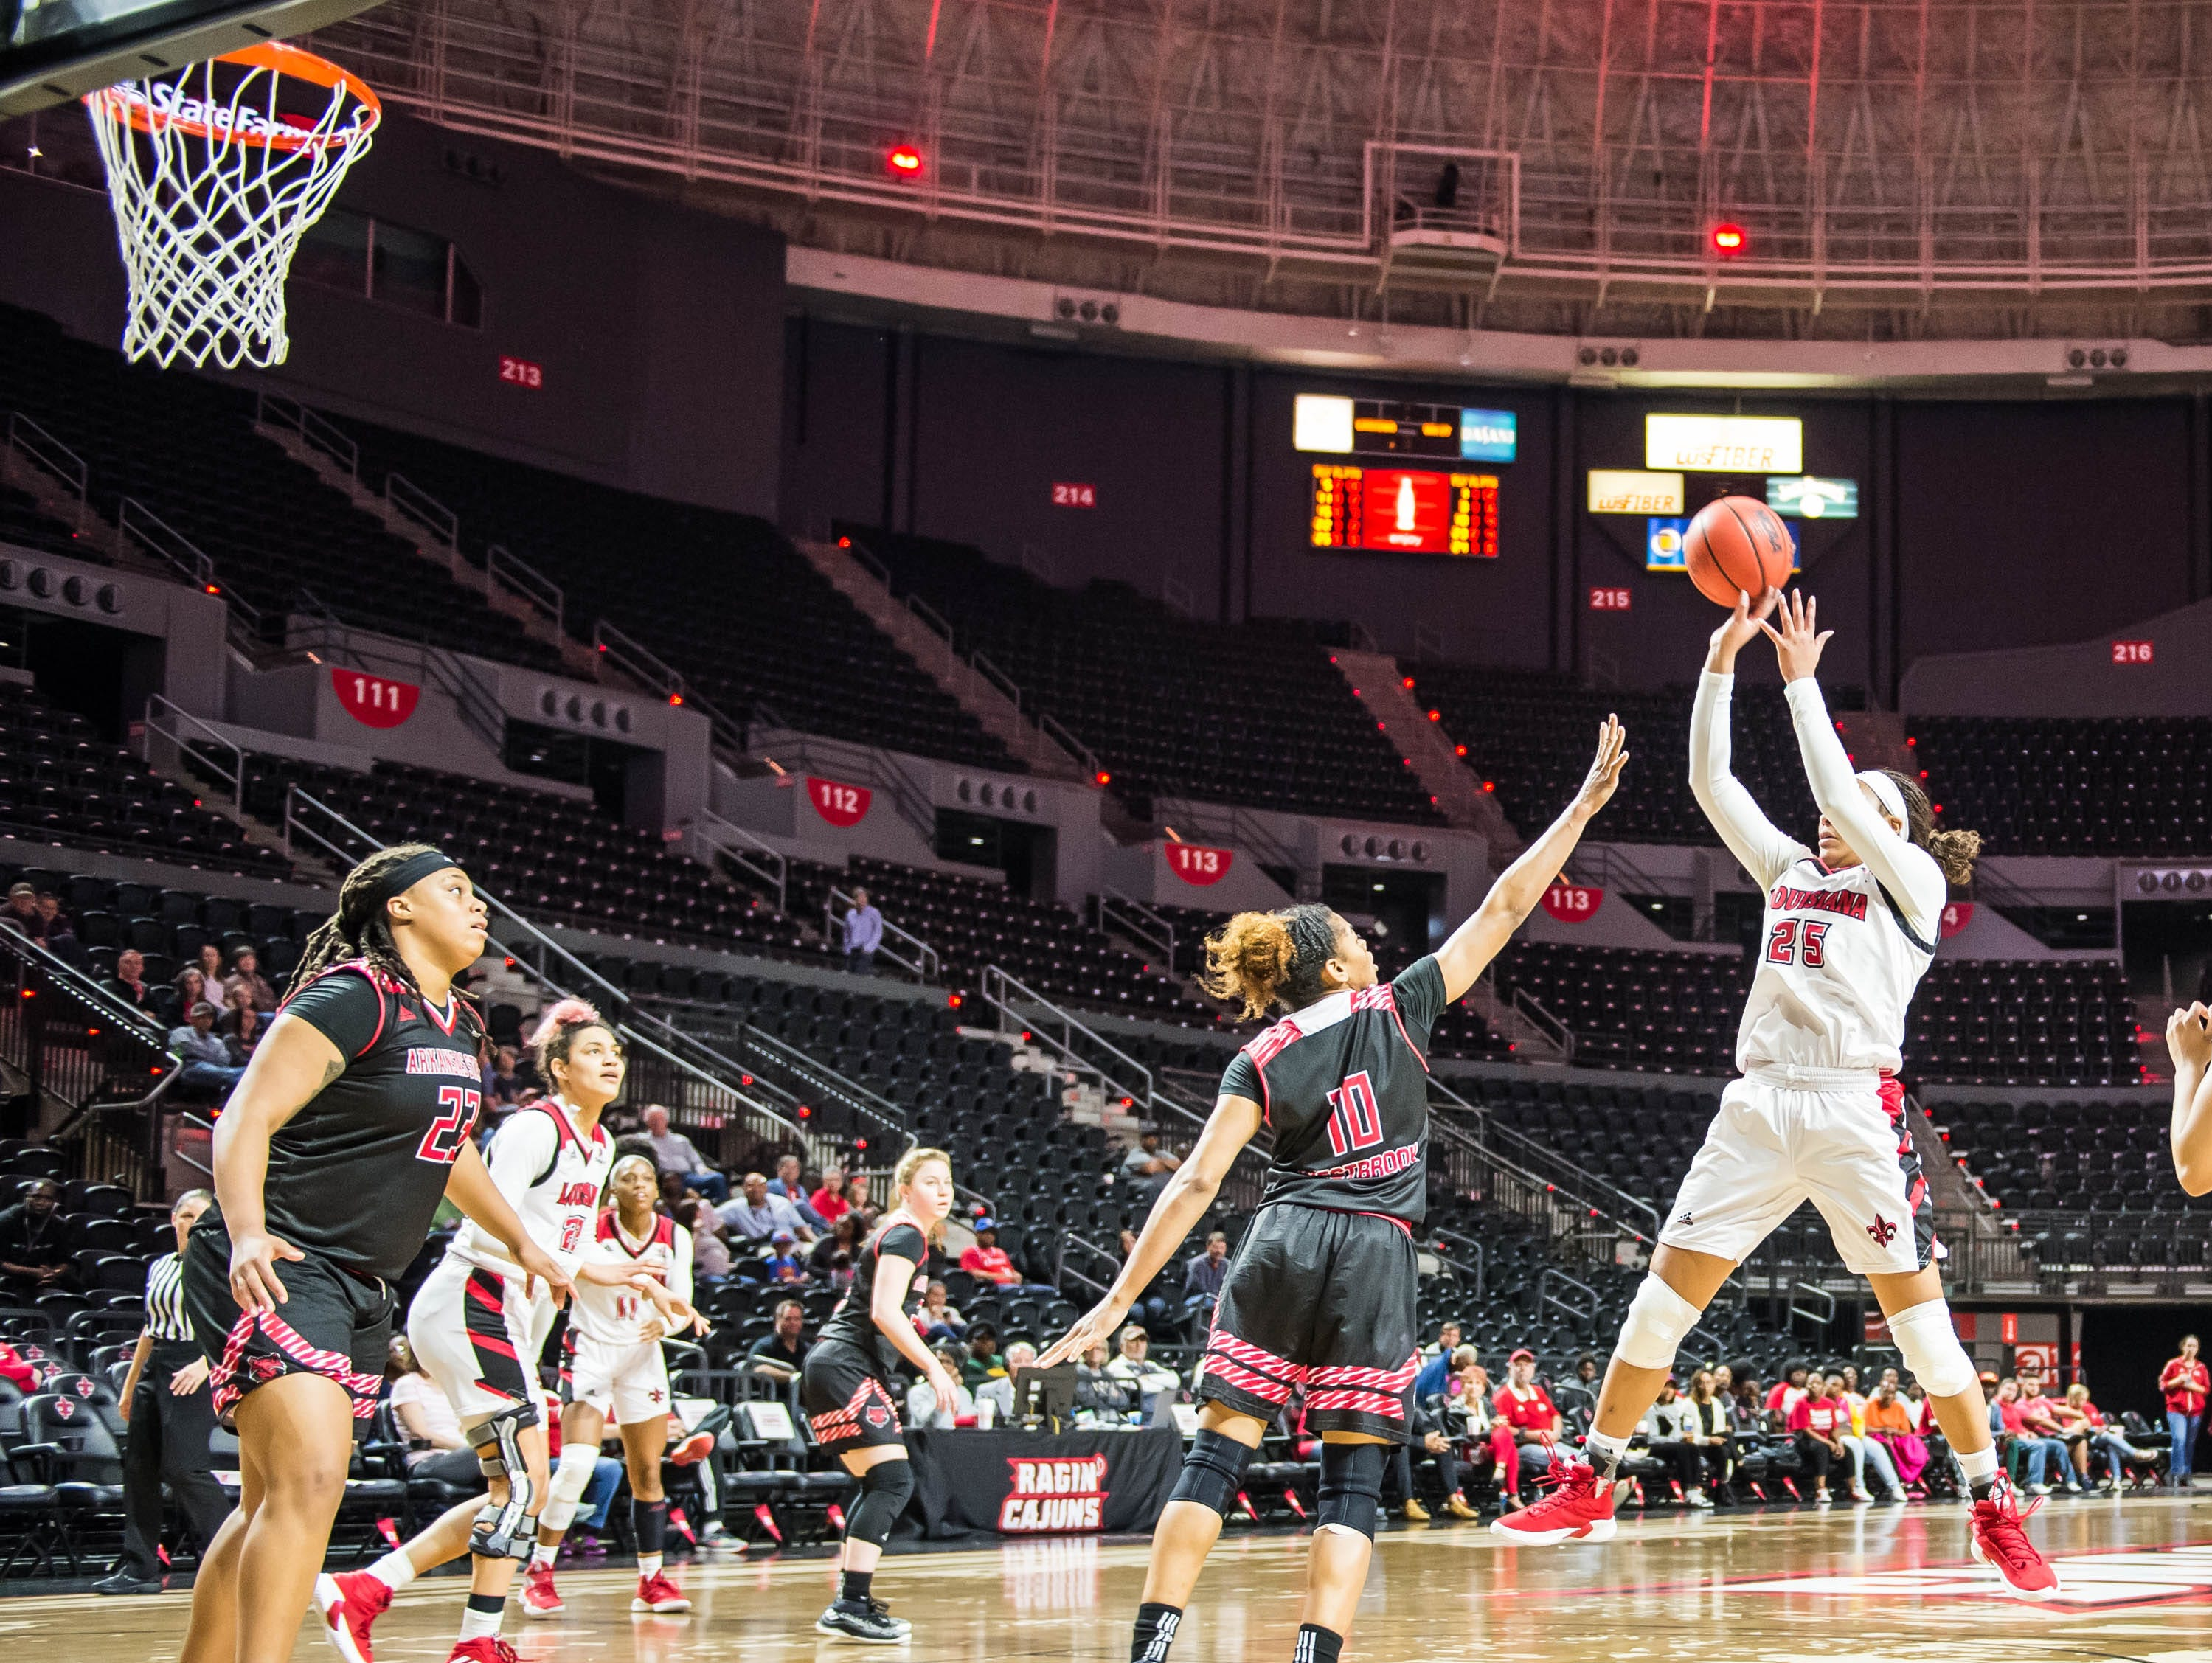 Jazmyn Womack (25) with the 10-foot jump shot as the Cajuns women's basketball team plays the Arkansas State Red Wolves at the Cajundome on Saturday, March 9, 2019.